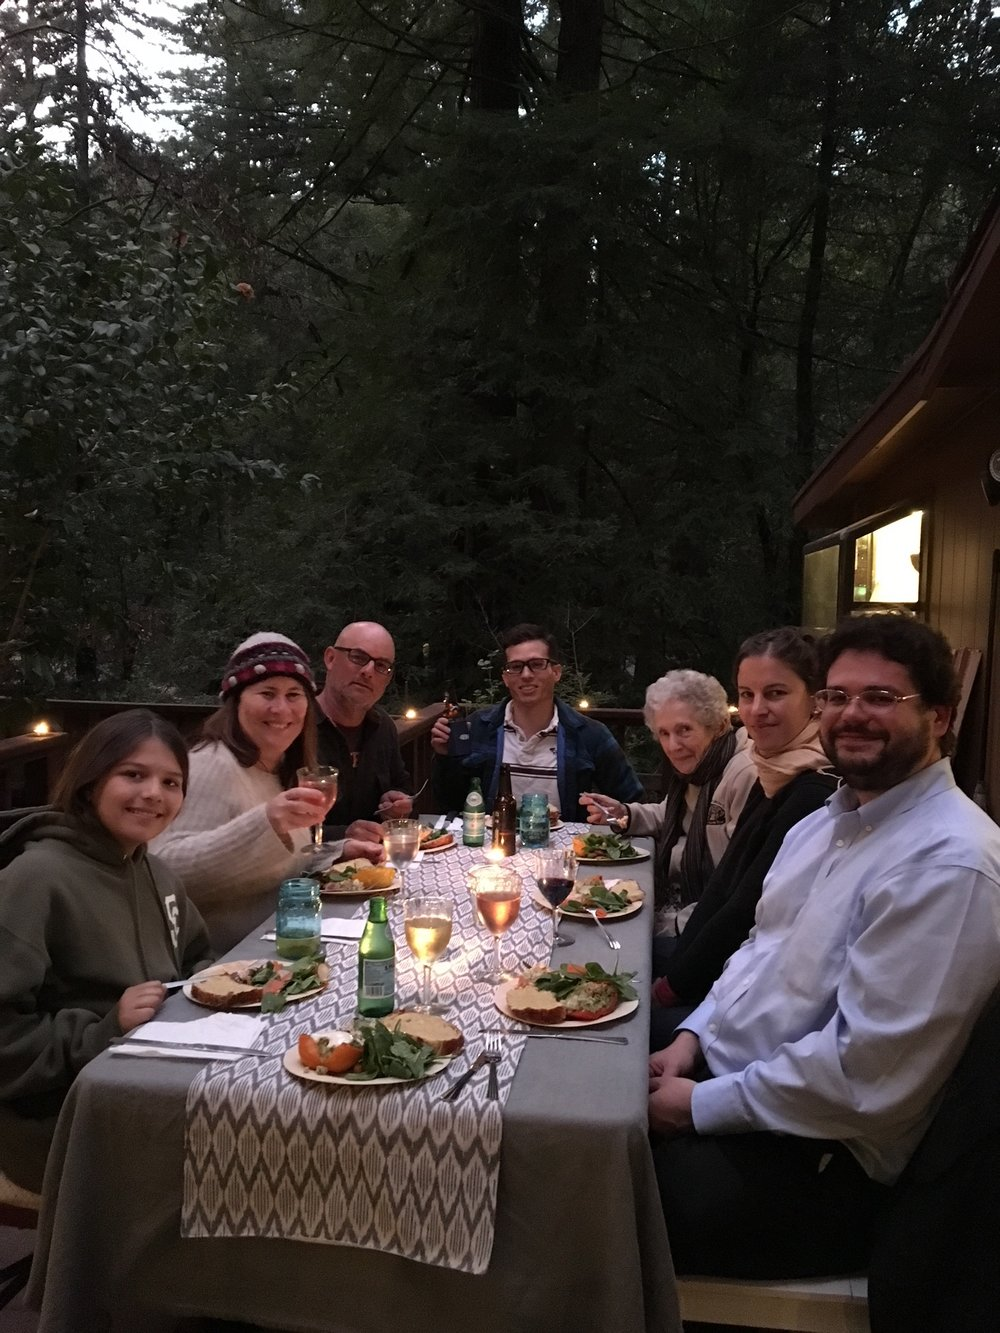 Hosted our first (fairly) large dinner party when our friend Martin was in town from Switzerland